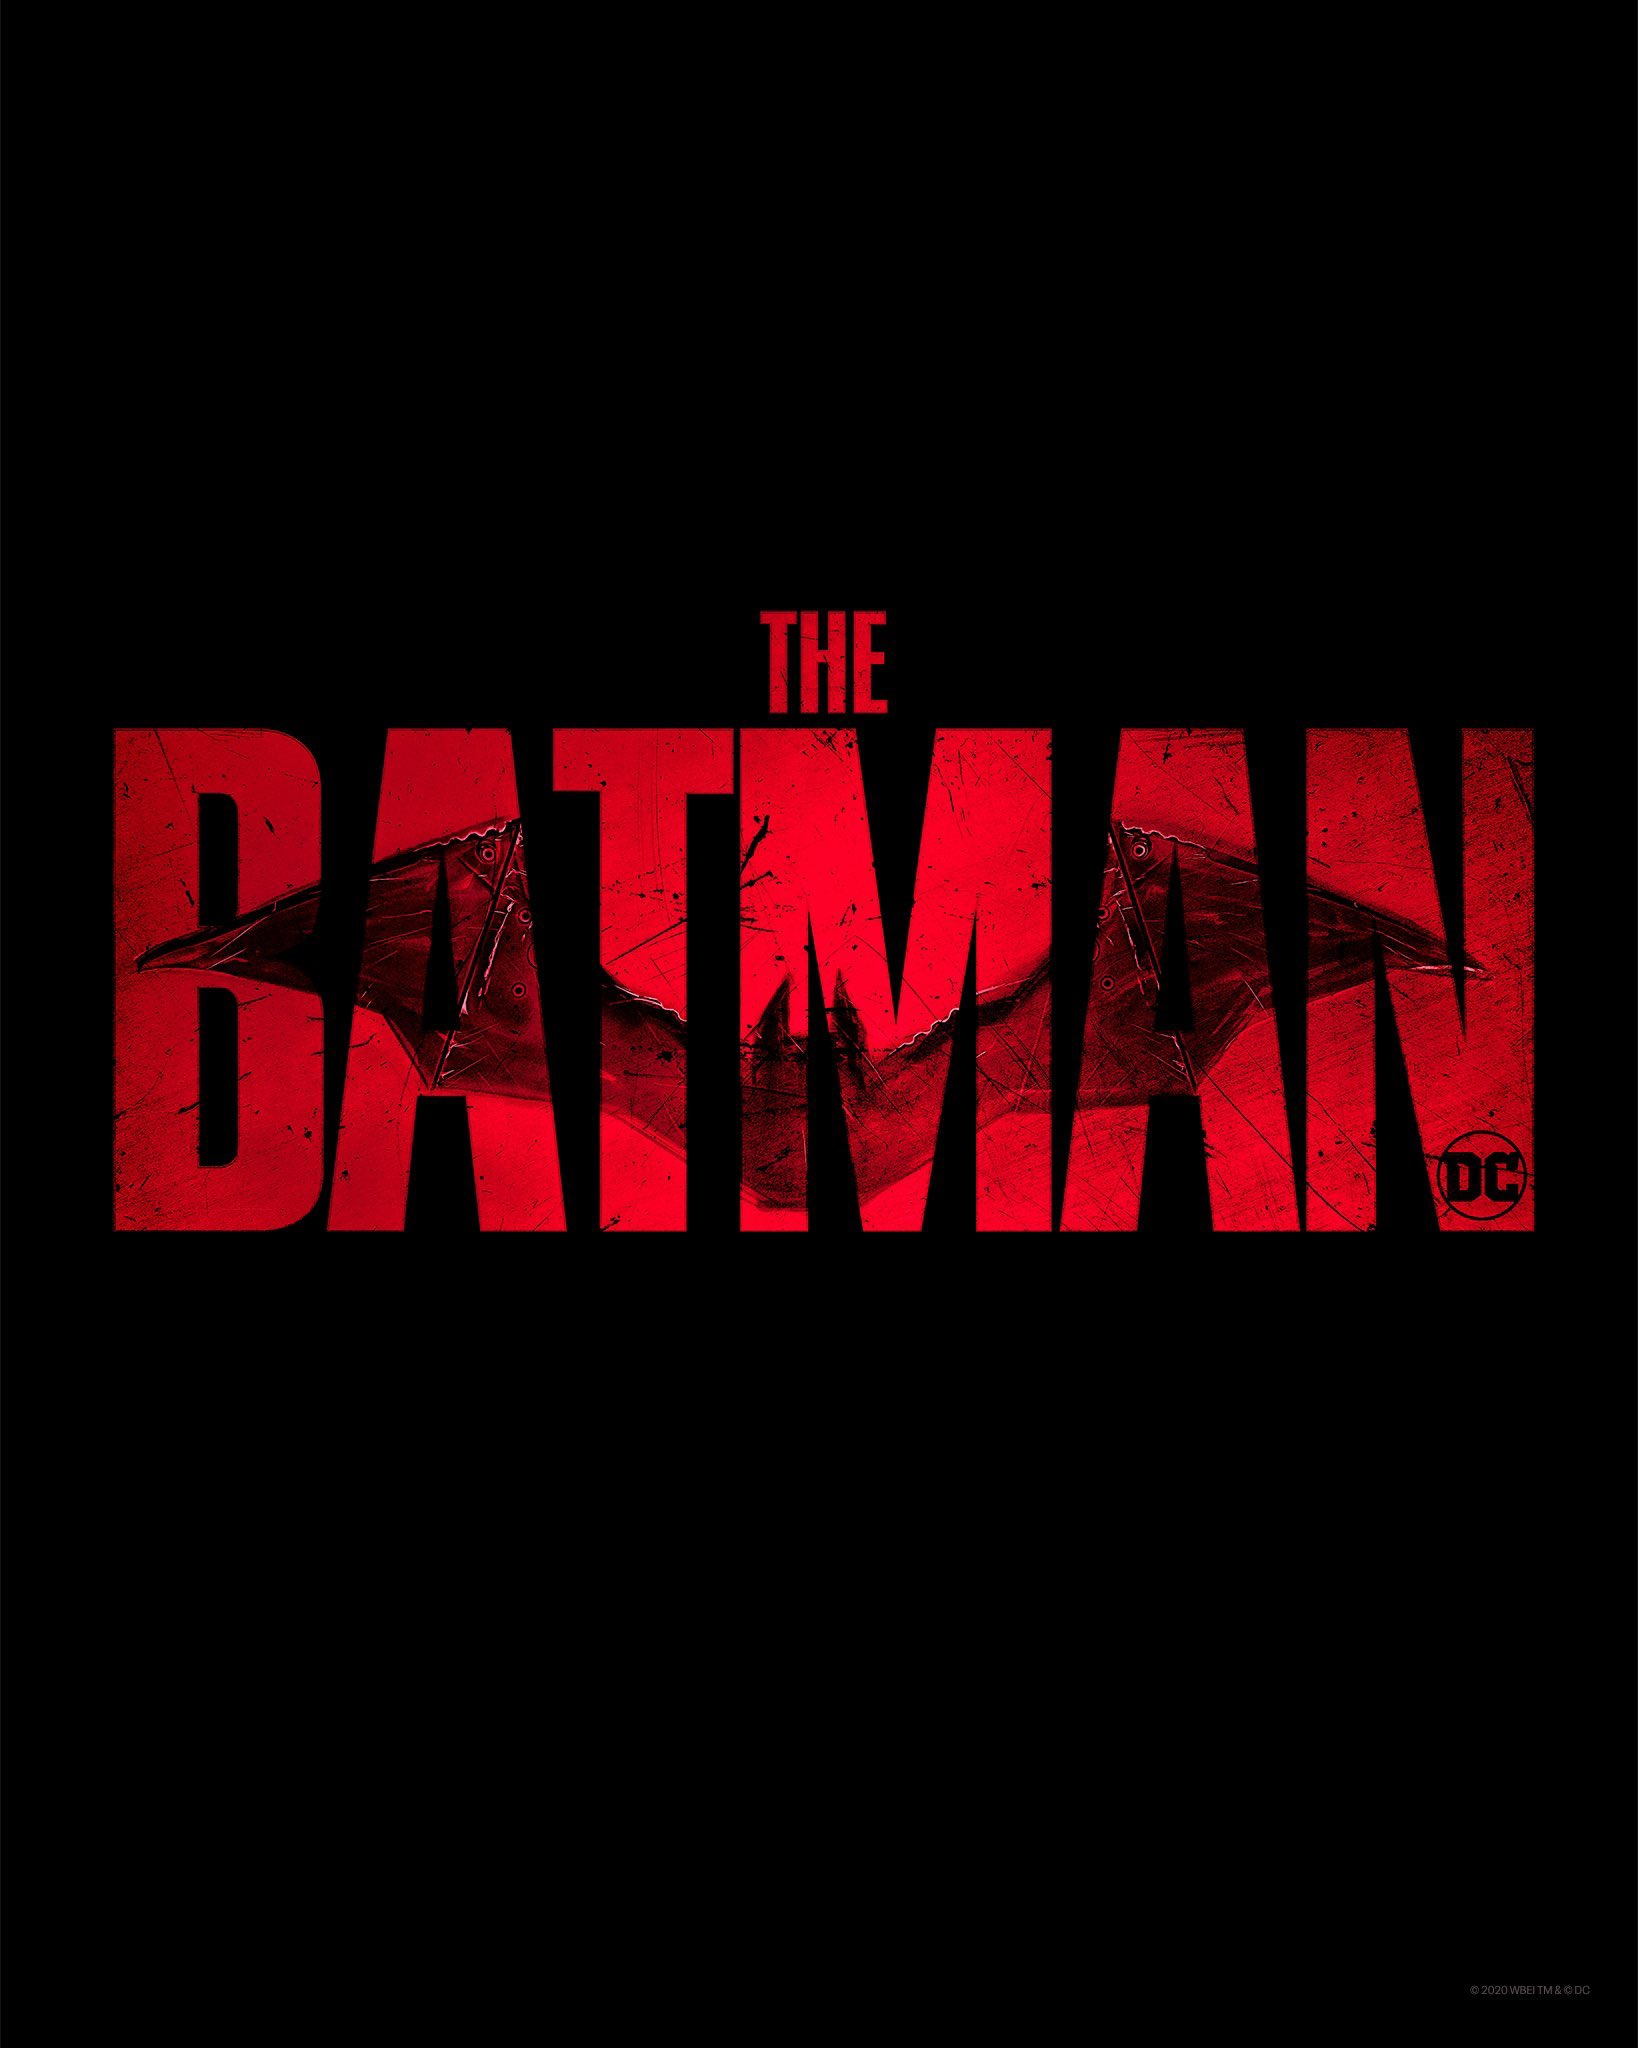 The Batman: Primer tráiler del film dirigido por Matt Reeves